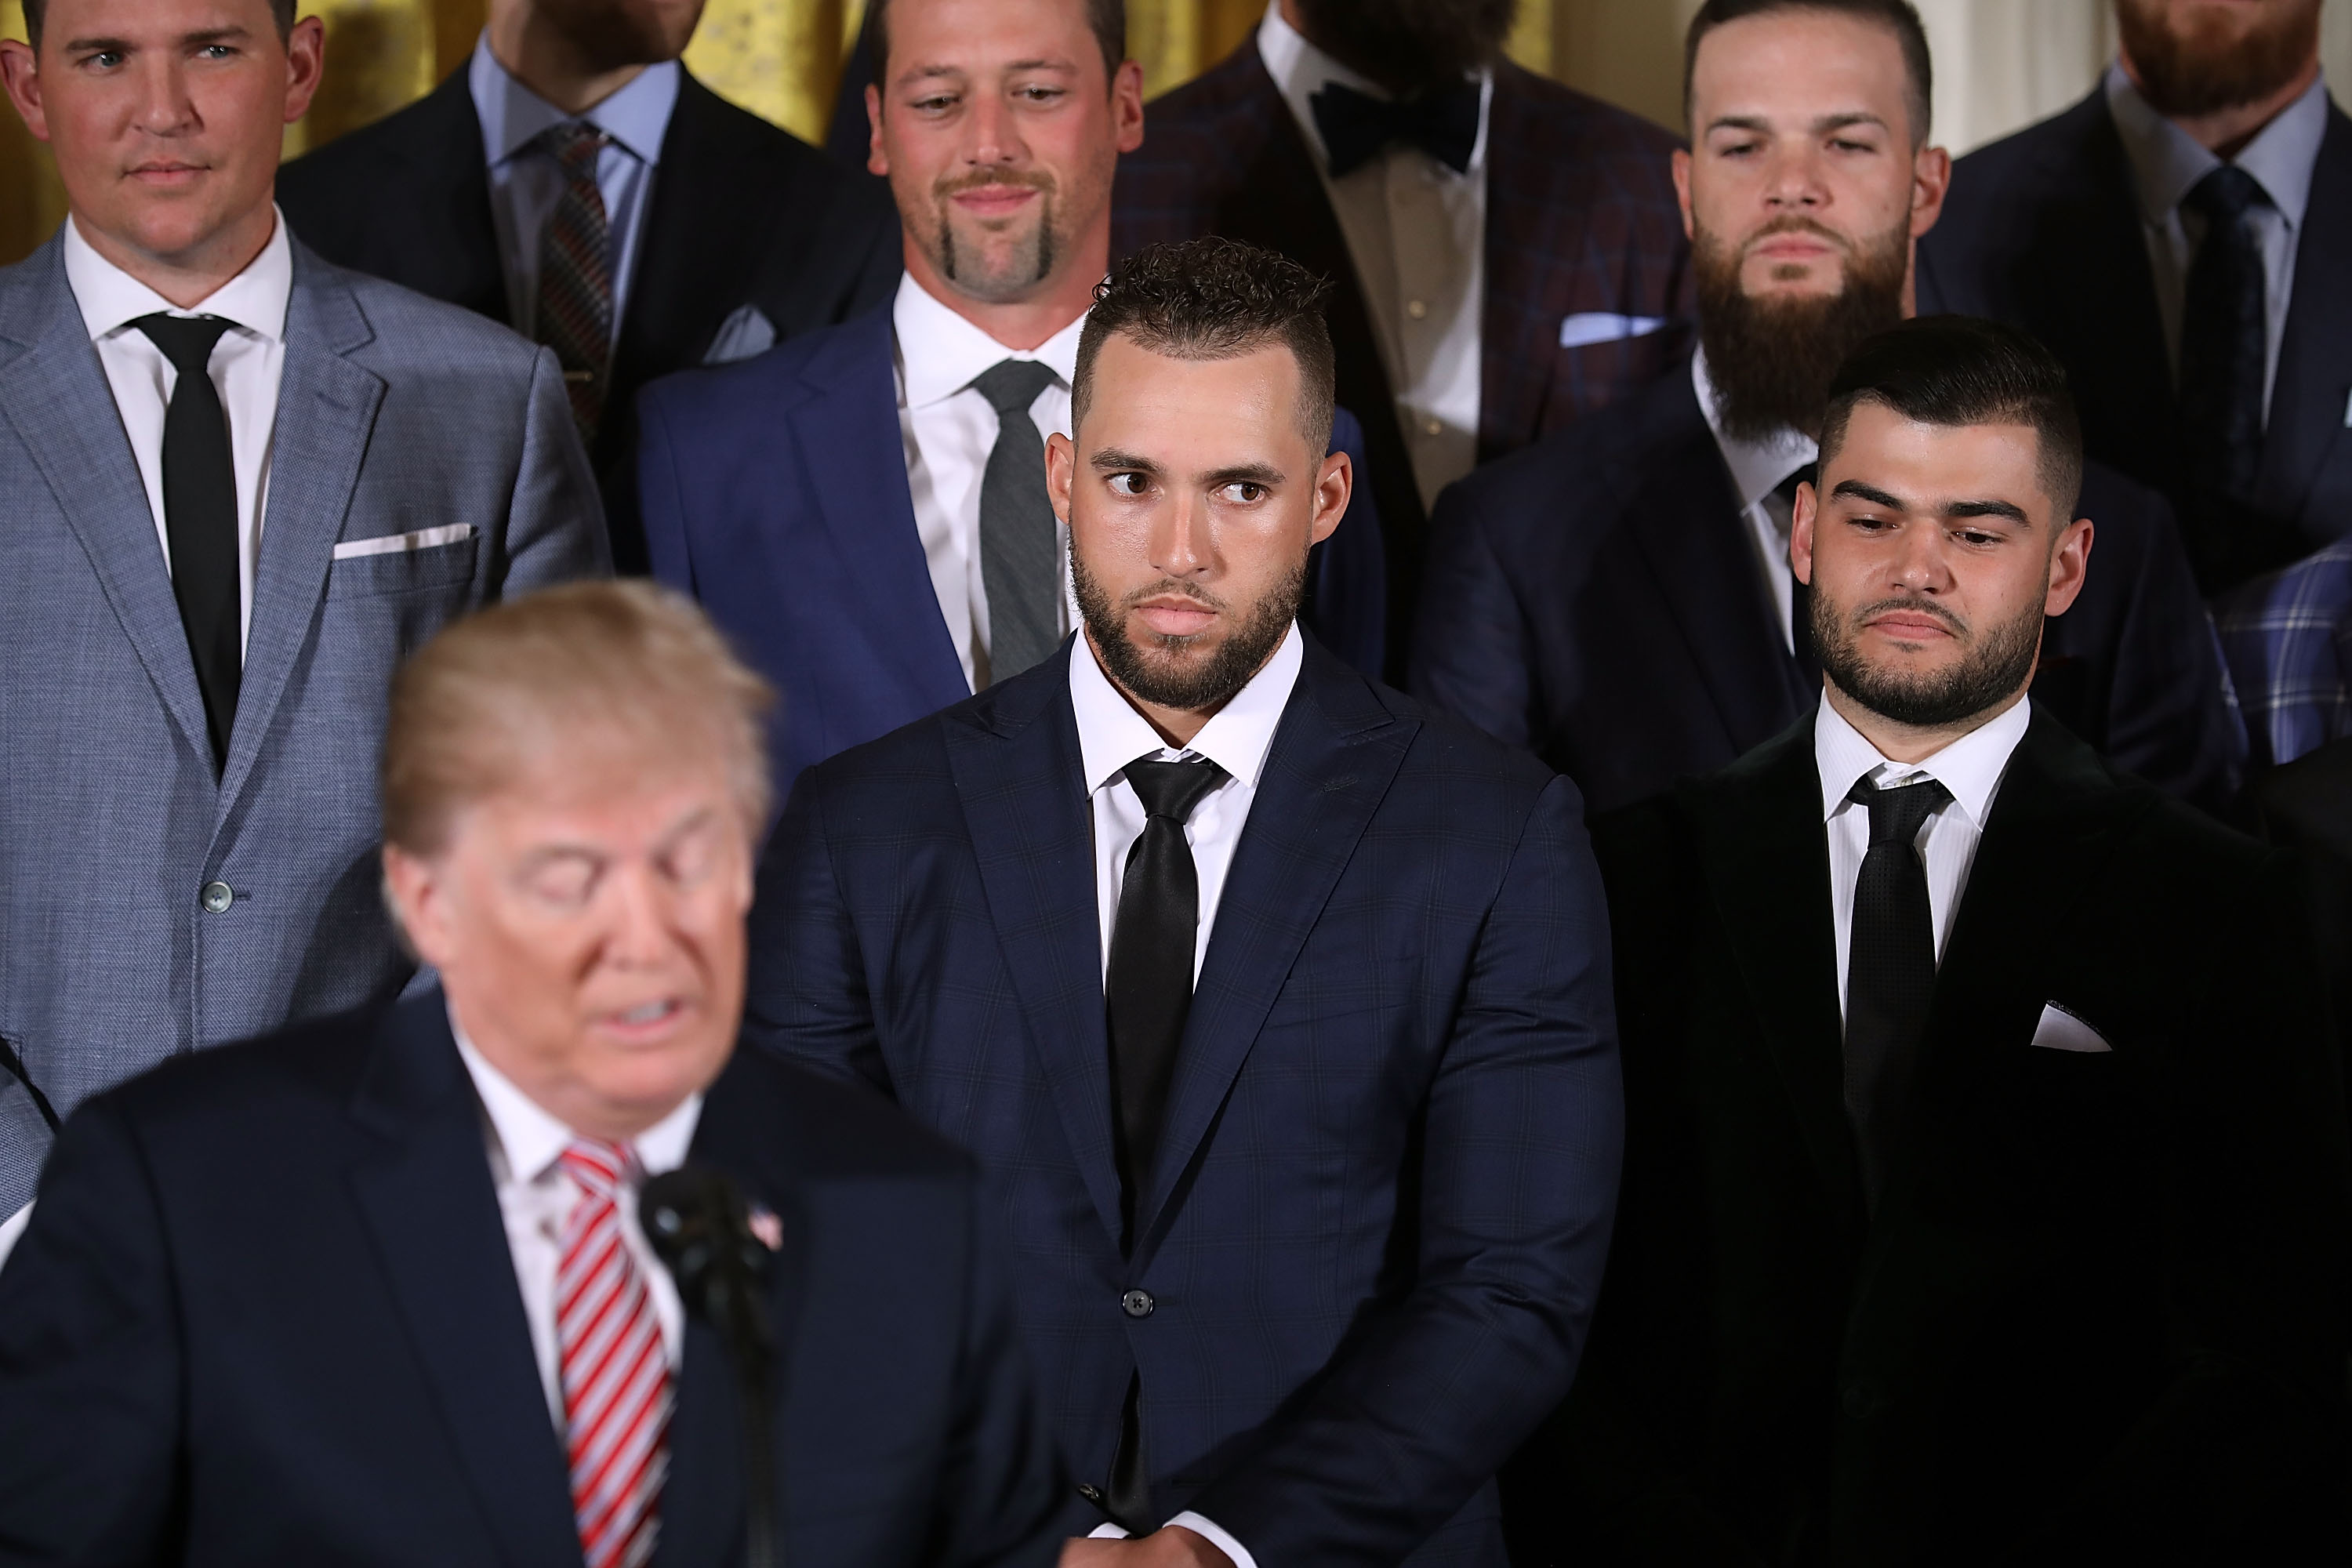 Donald Trump Welcomes World Series Champion Houston Astros To The White House